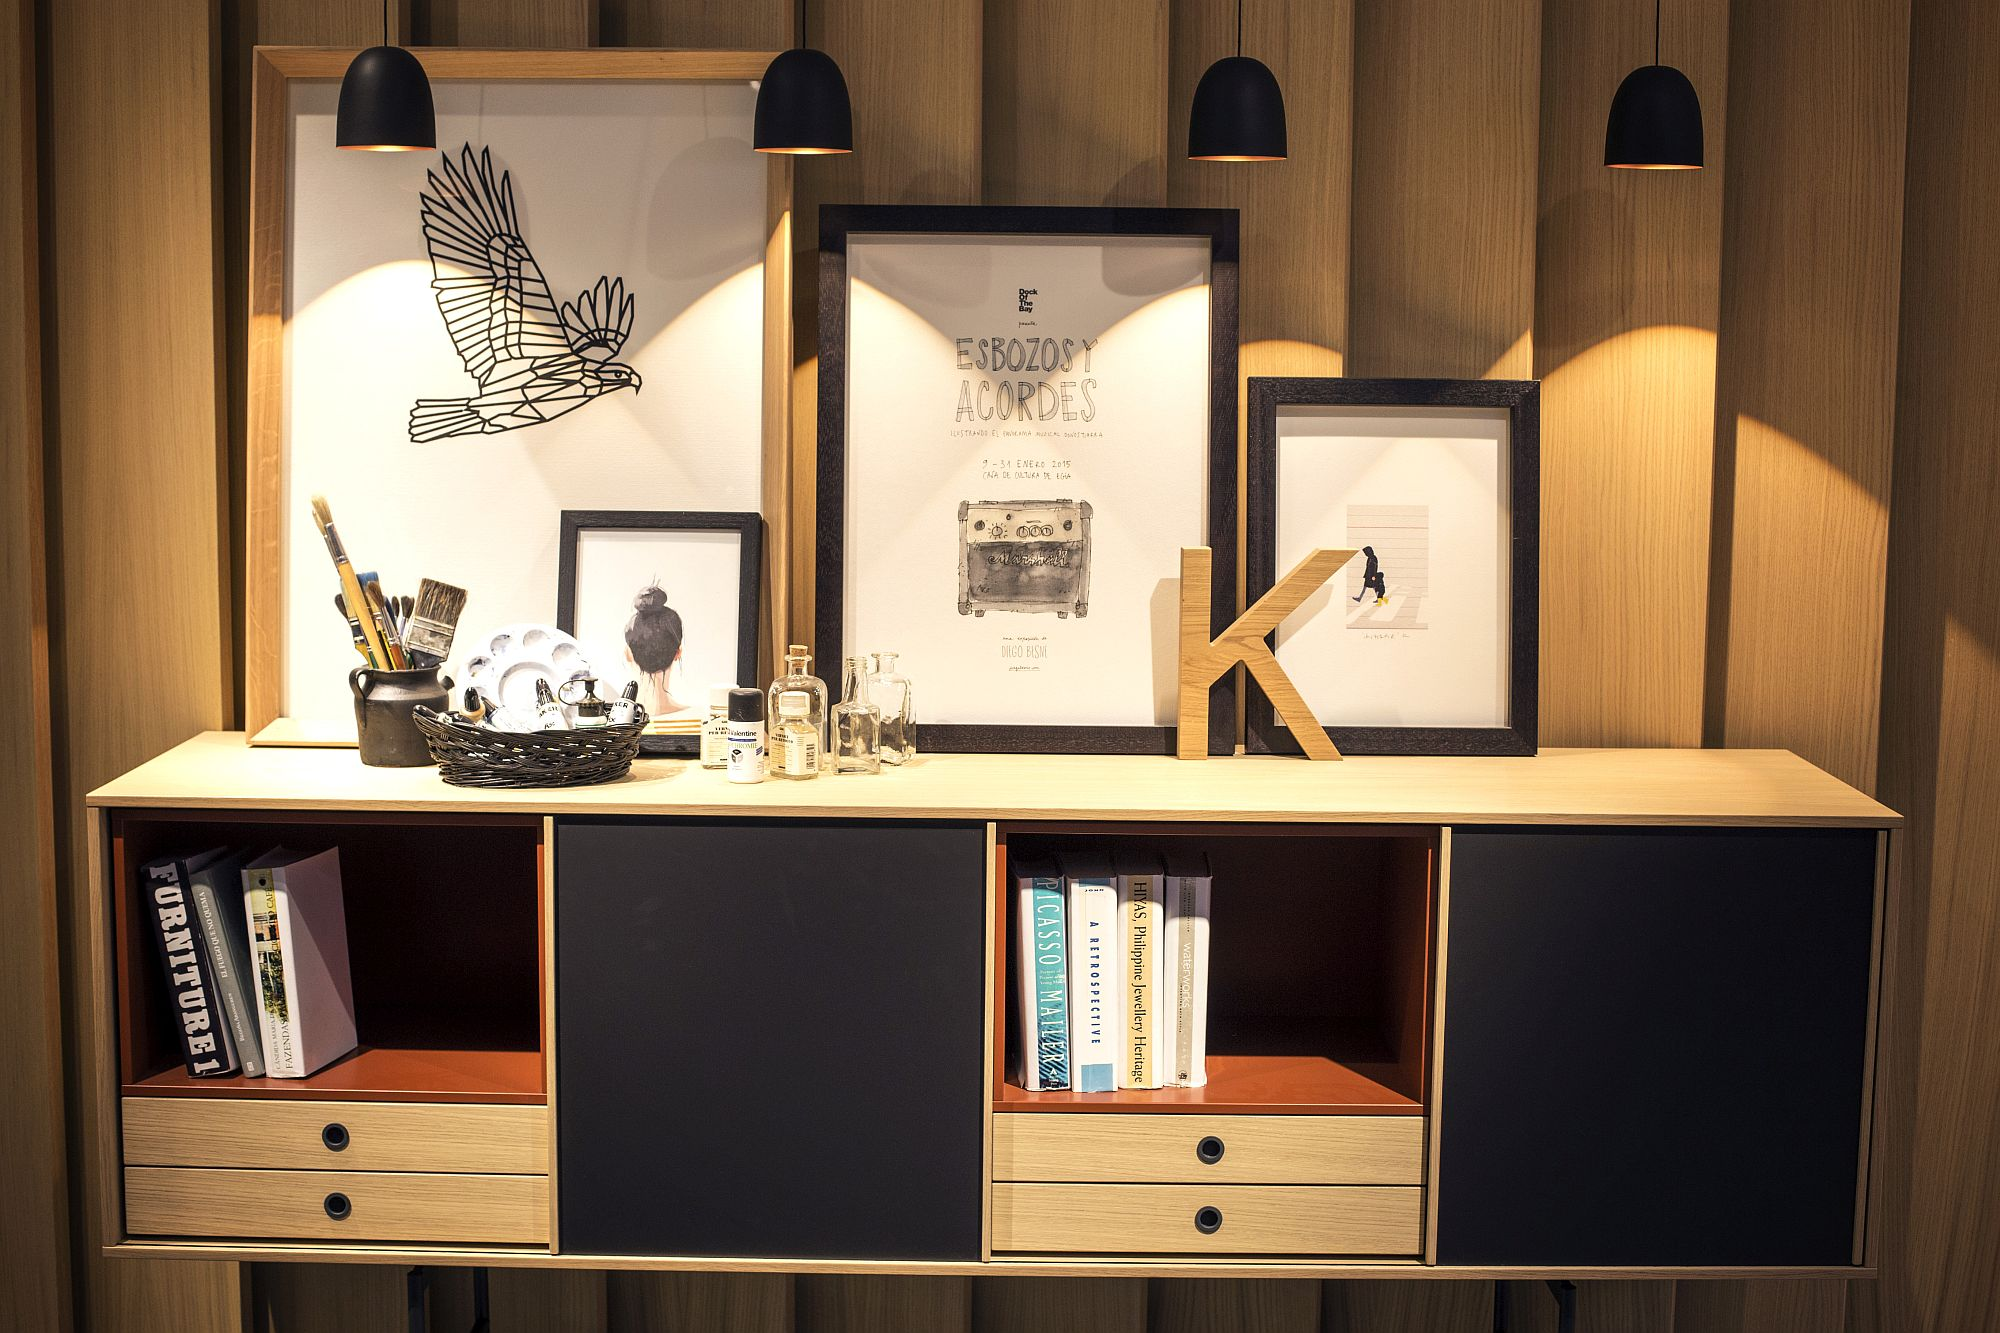 Series of small pendants in black provide the perfect accent lighting for the lovely display